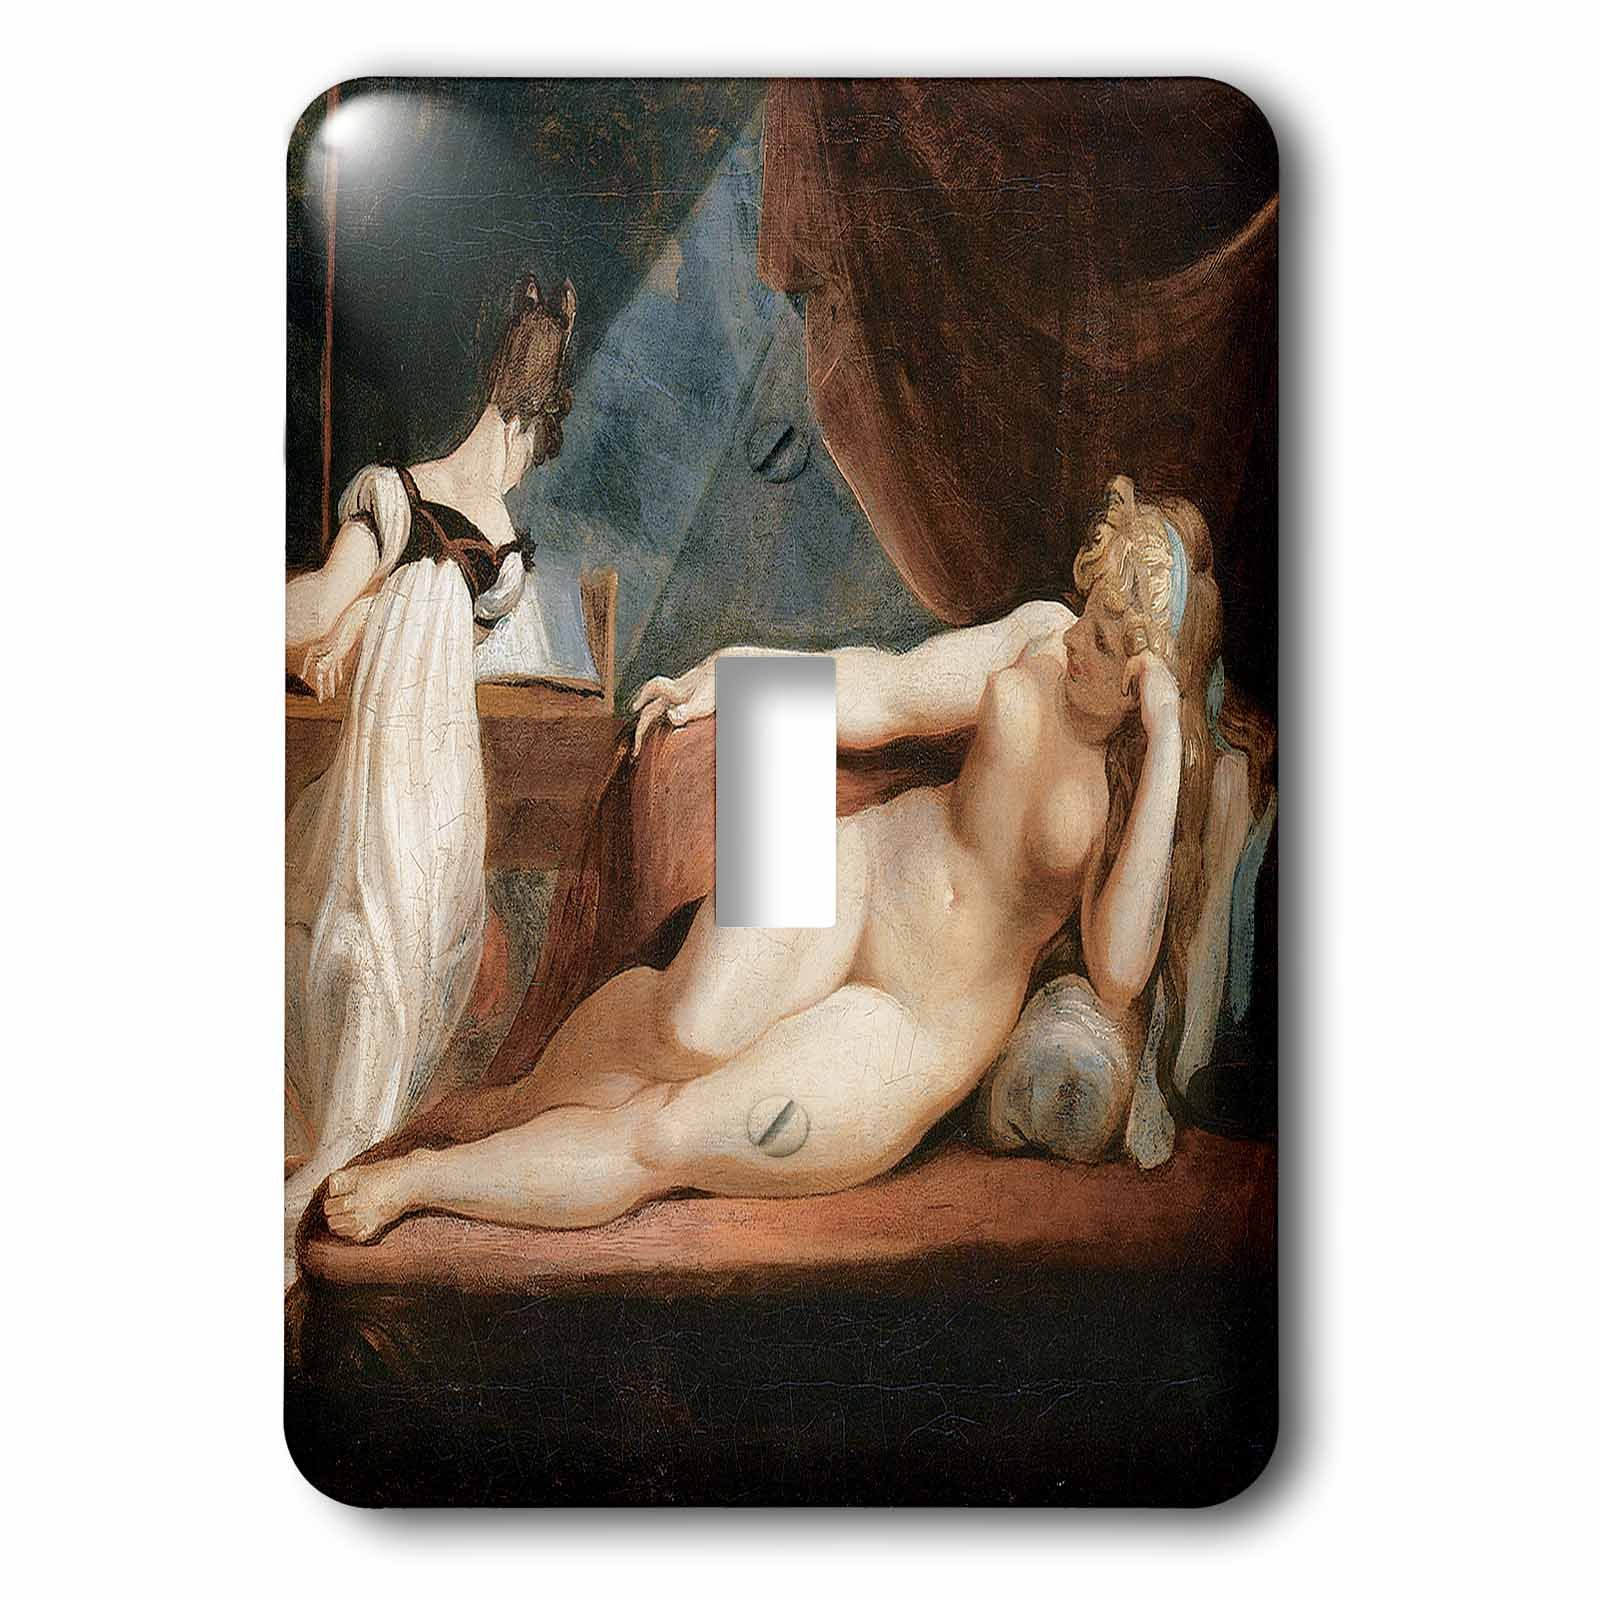 3dRose LLC 3dRose LLC lsp_127984_1 Naked Woman and Woman Playing the Piano by Johann heinrih Fussli - Single Toggle Switch